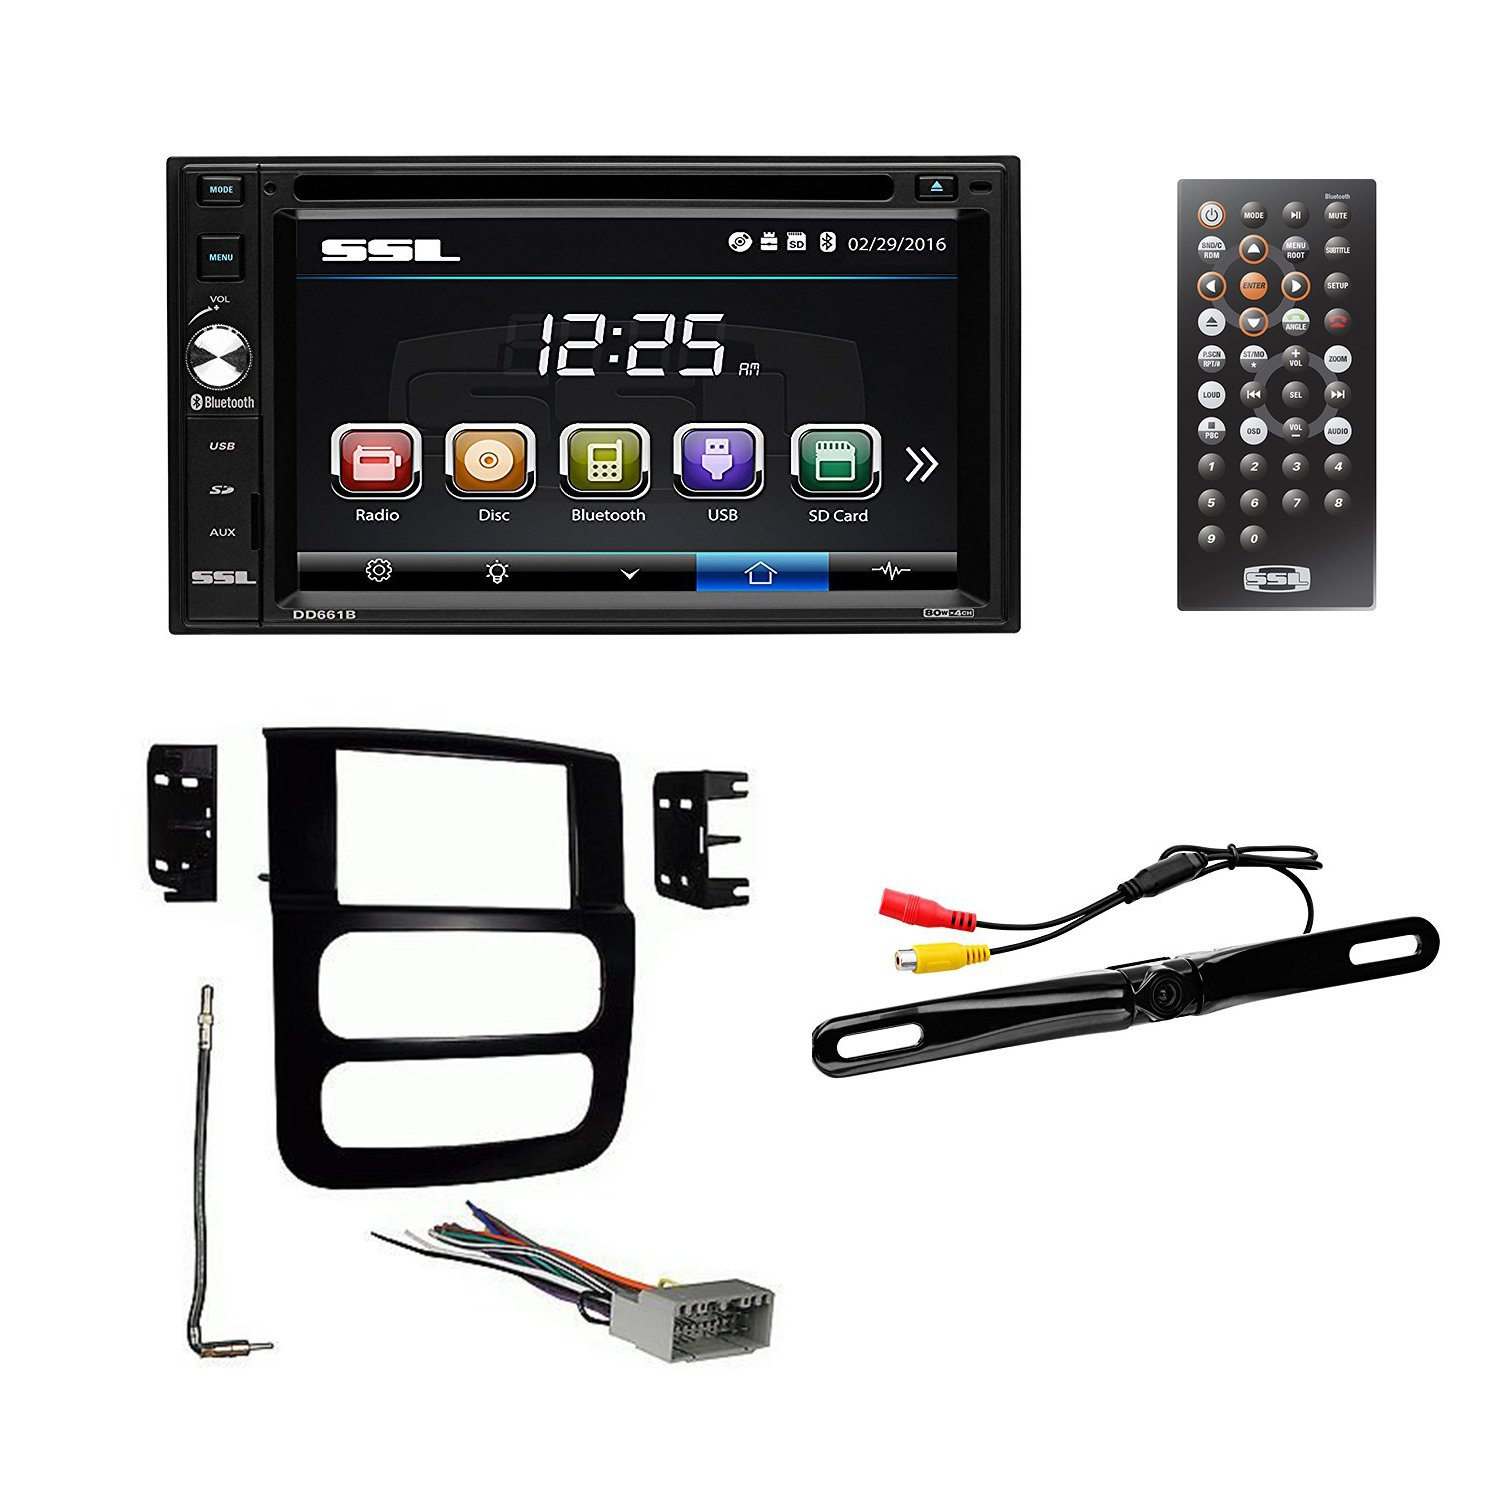 2002 05 Dodge Ram Double Din 62 Touch Screen Monitor Stereo Wiring Harness Amazoncom Wire Dash Kit Radio Antenna Adapter Rear View Cam Car Electronics